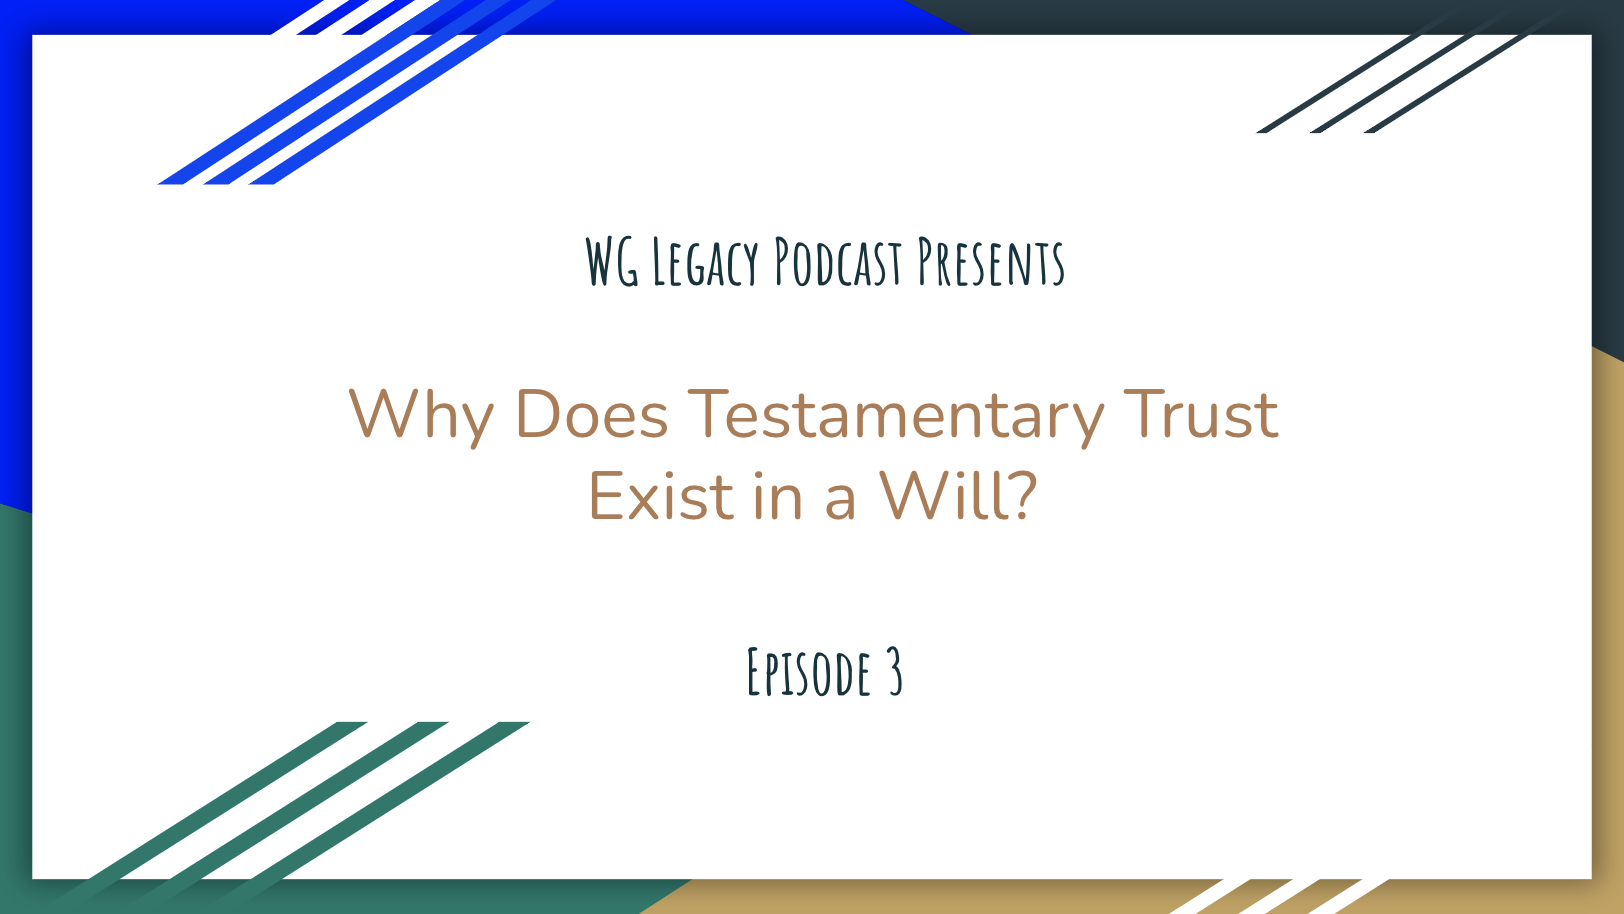 Why Does Testamentary Trust Exist in a Will?